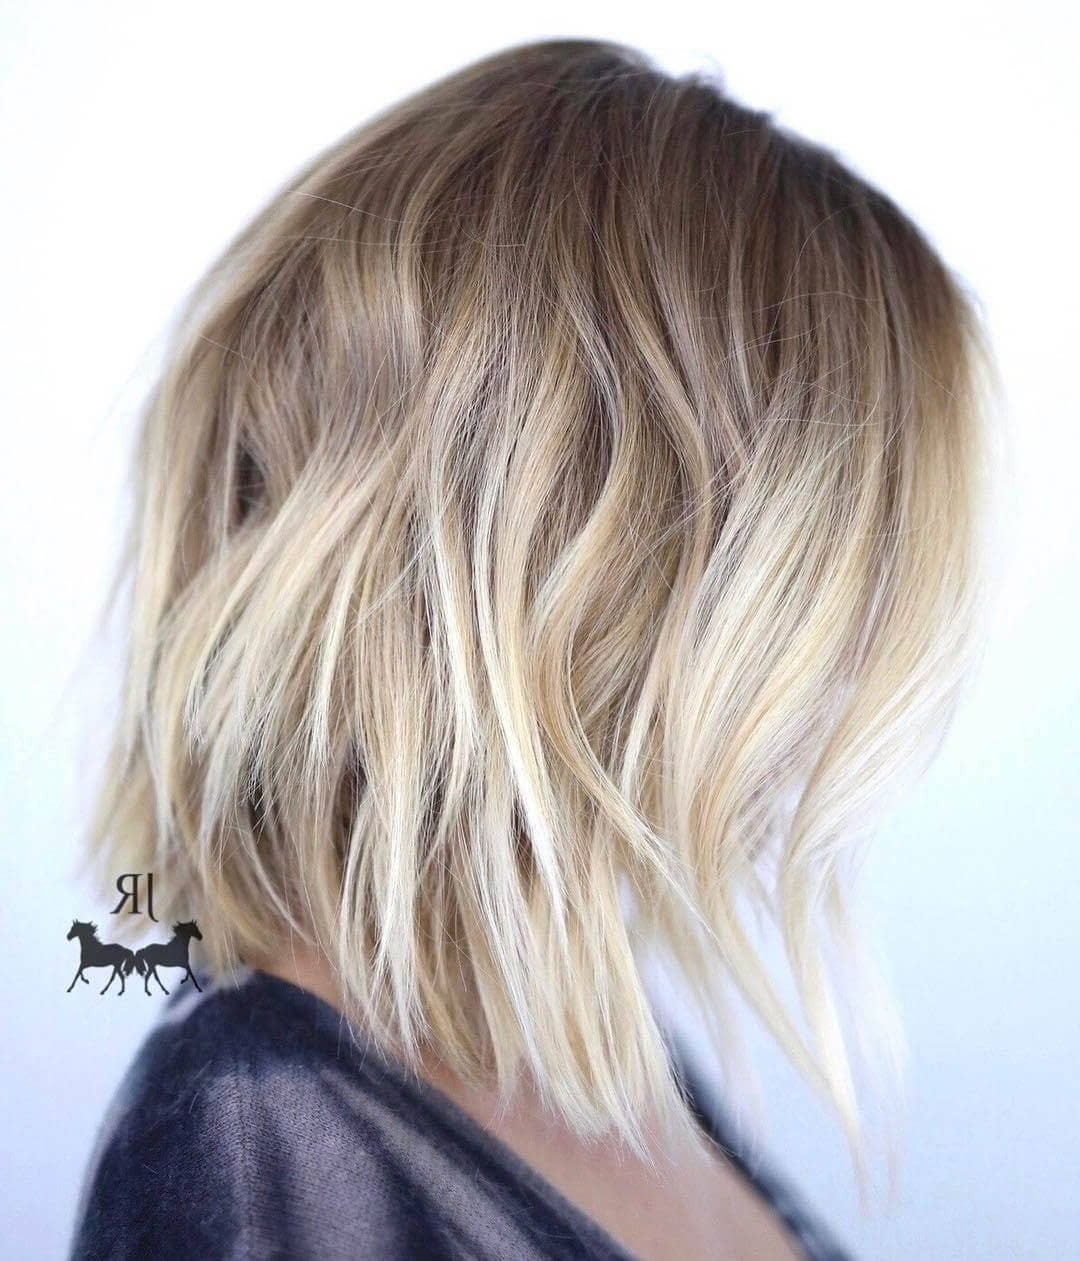 50 Fresh Short Blonde Hair Ideas To Update Your Style In 2018 Regarding Messy Honey Blonde Bob Haircuts (View 6 of 20)